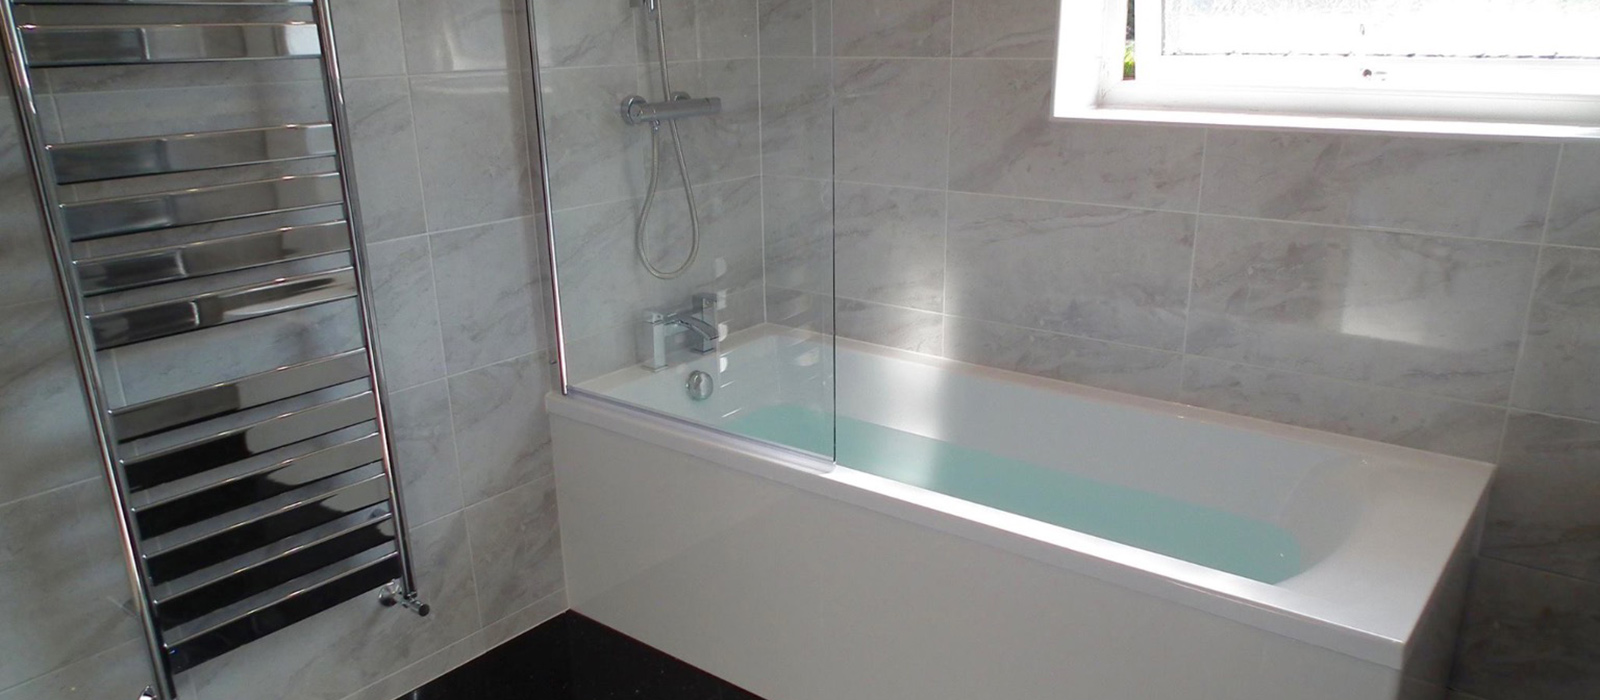 Trentham-Bathrooms-1